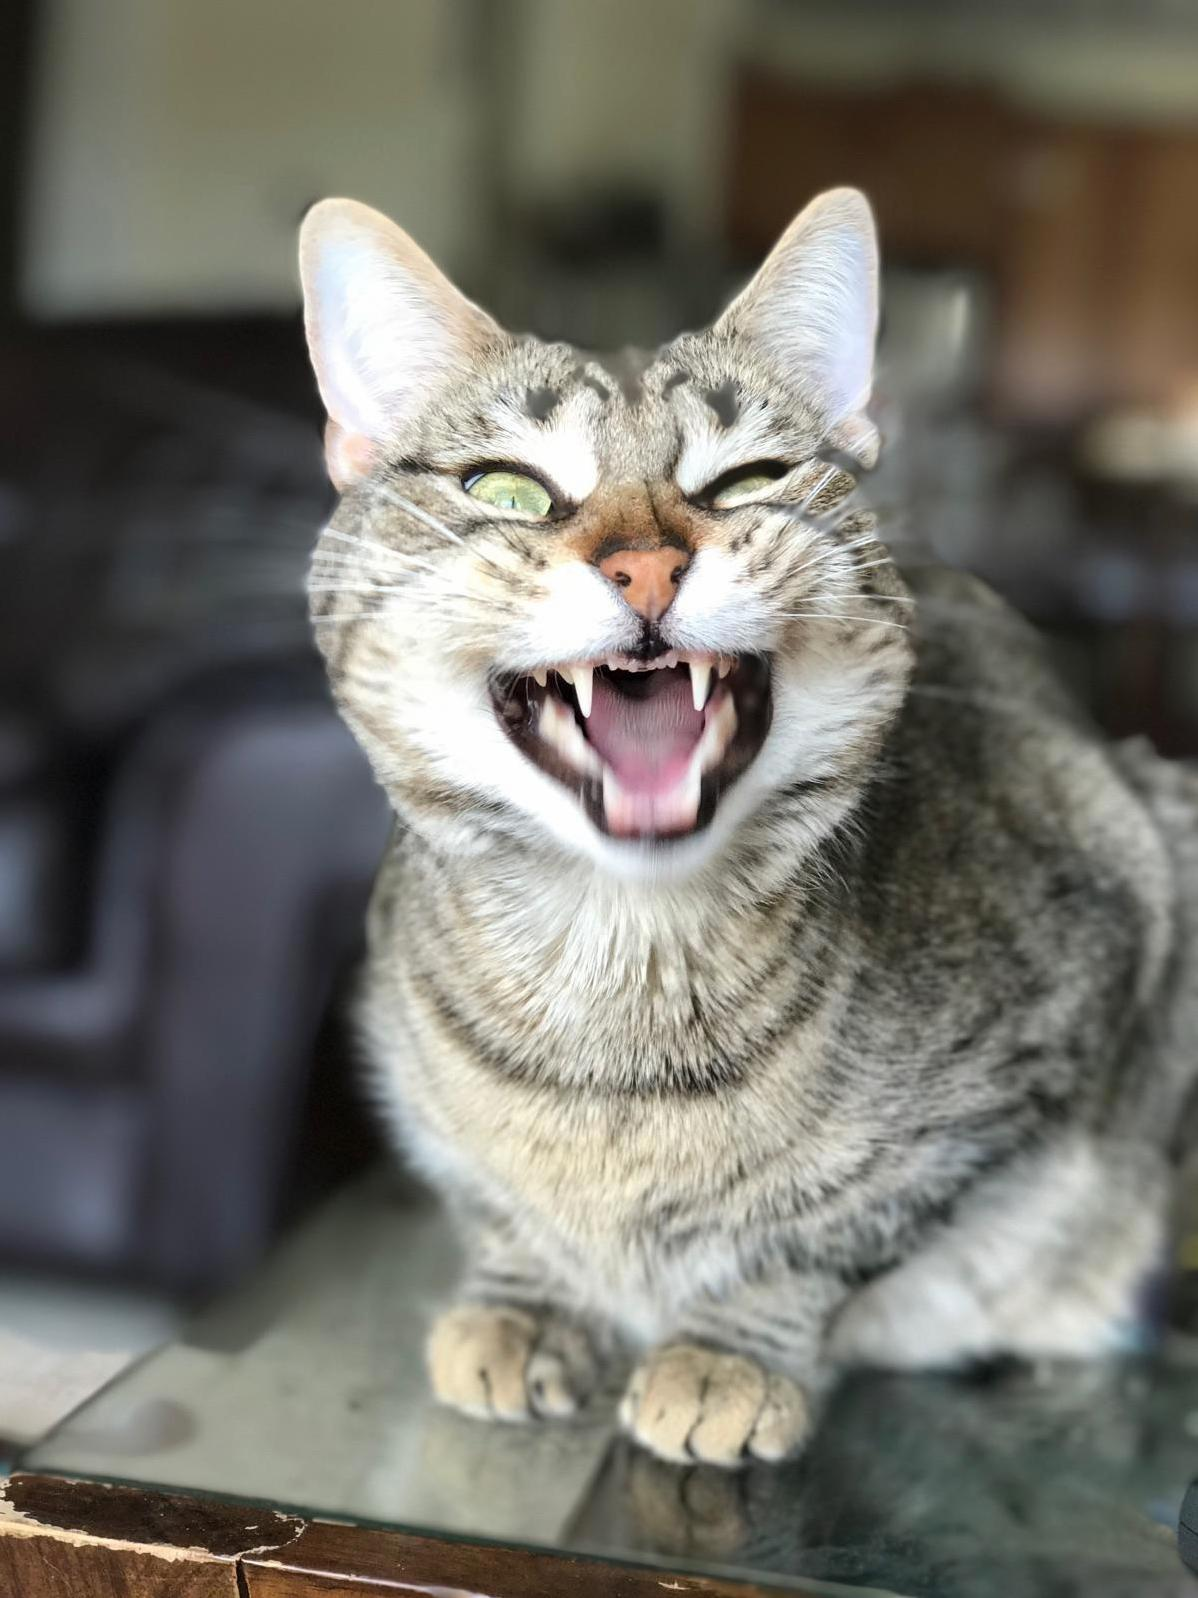 Sis was taking care of our cats this weekend she managed to catch sedona mid yawn looking furrrocious as ever.